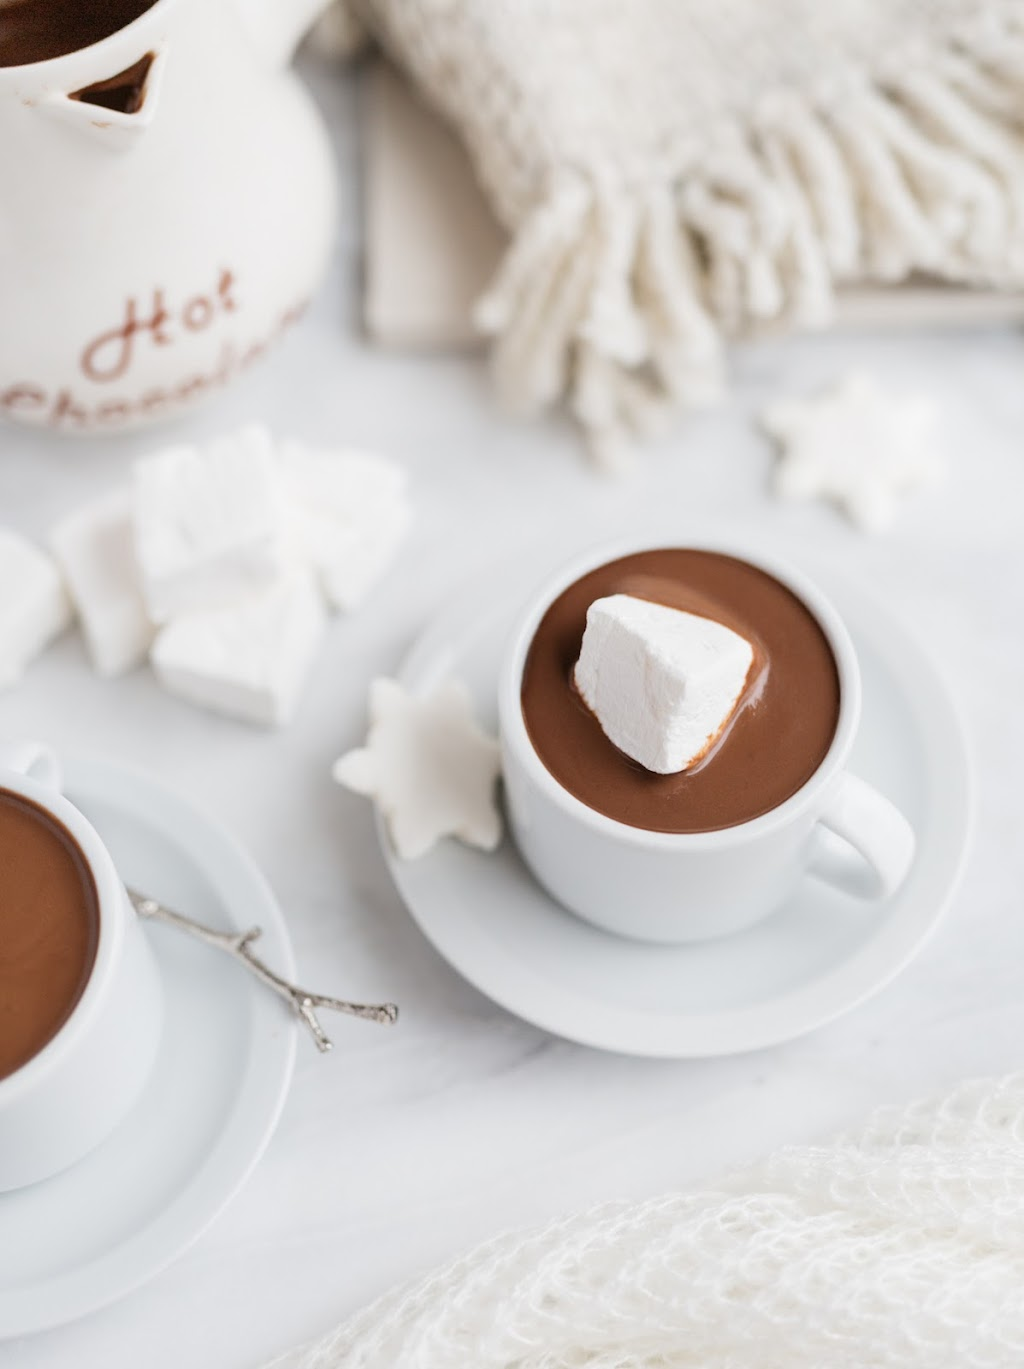 european style hot chocolate in a mug with marshmallows